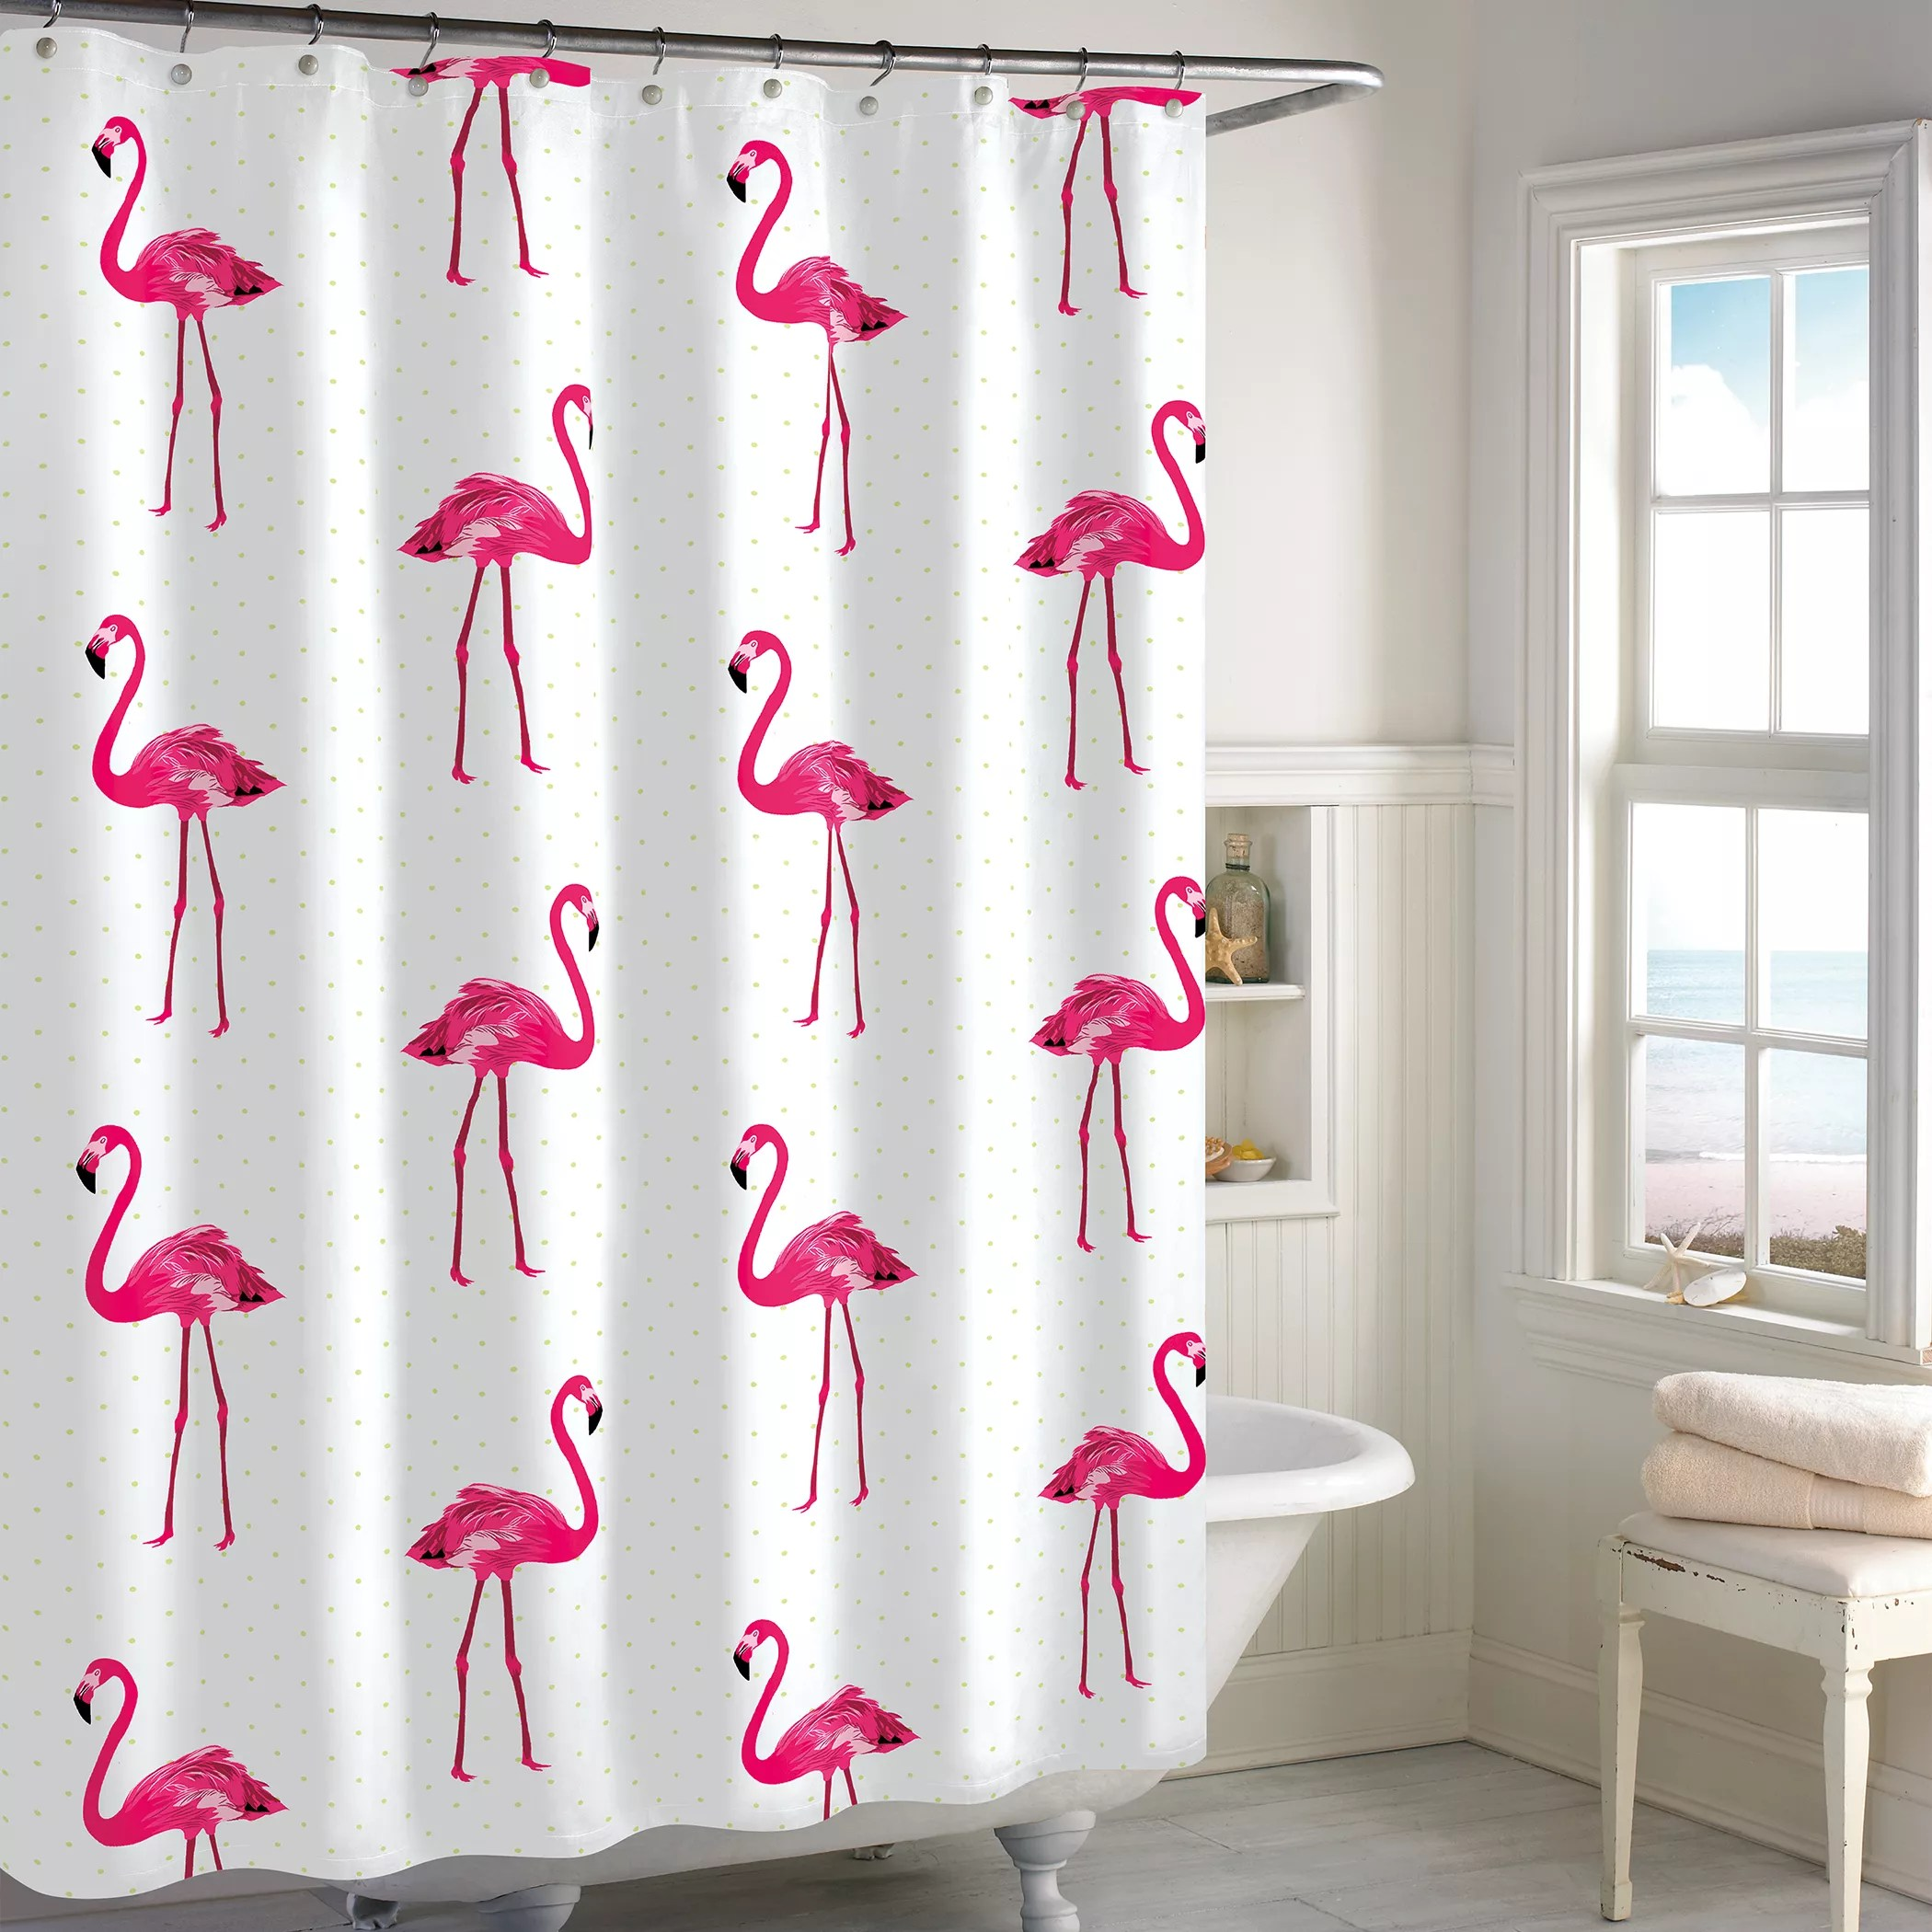 Apt 9 Shower Curtain Destinations Flamingo Shower Curtain Collection